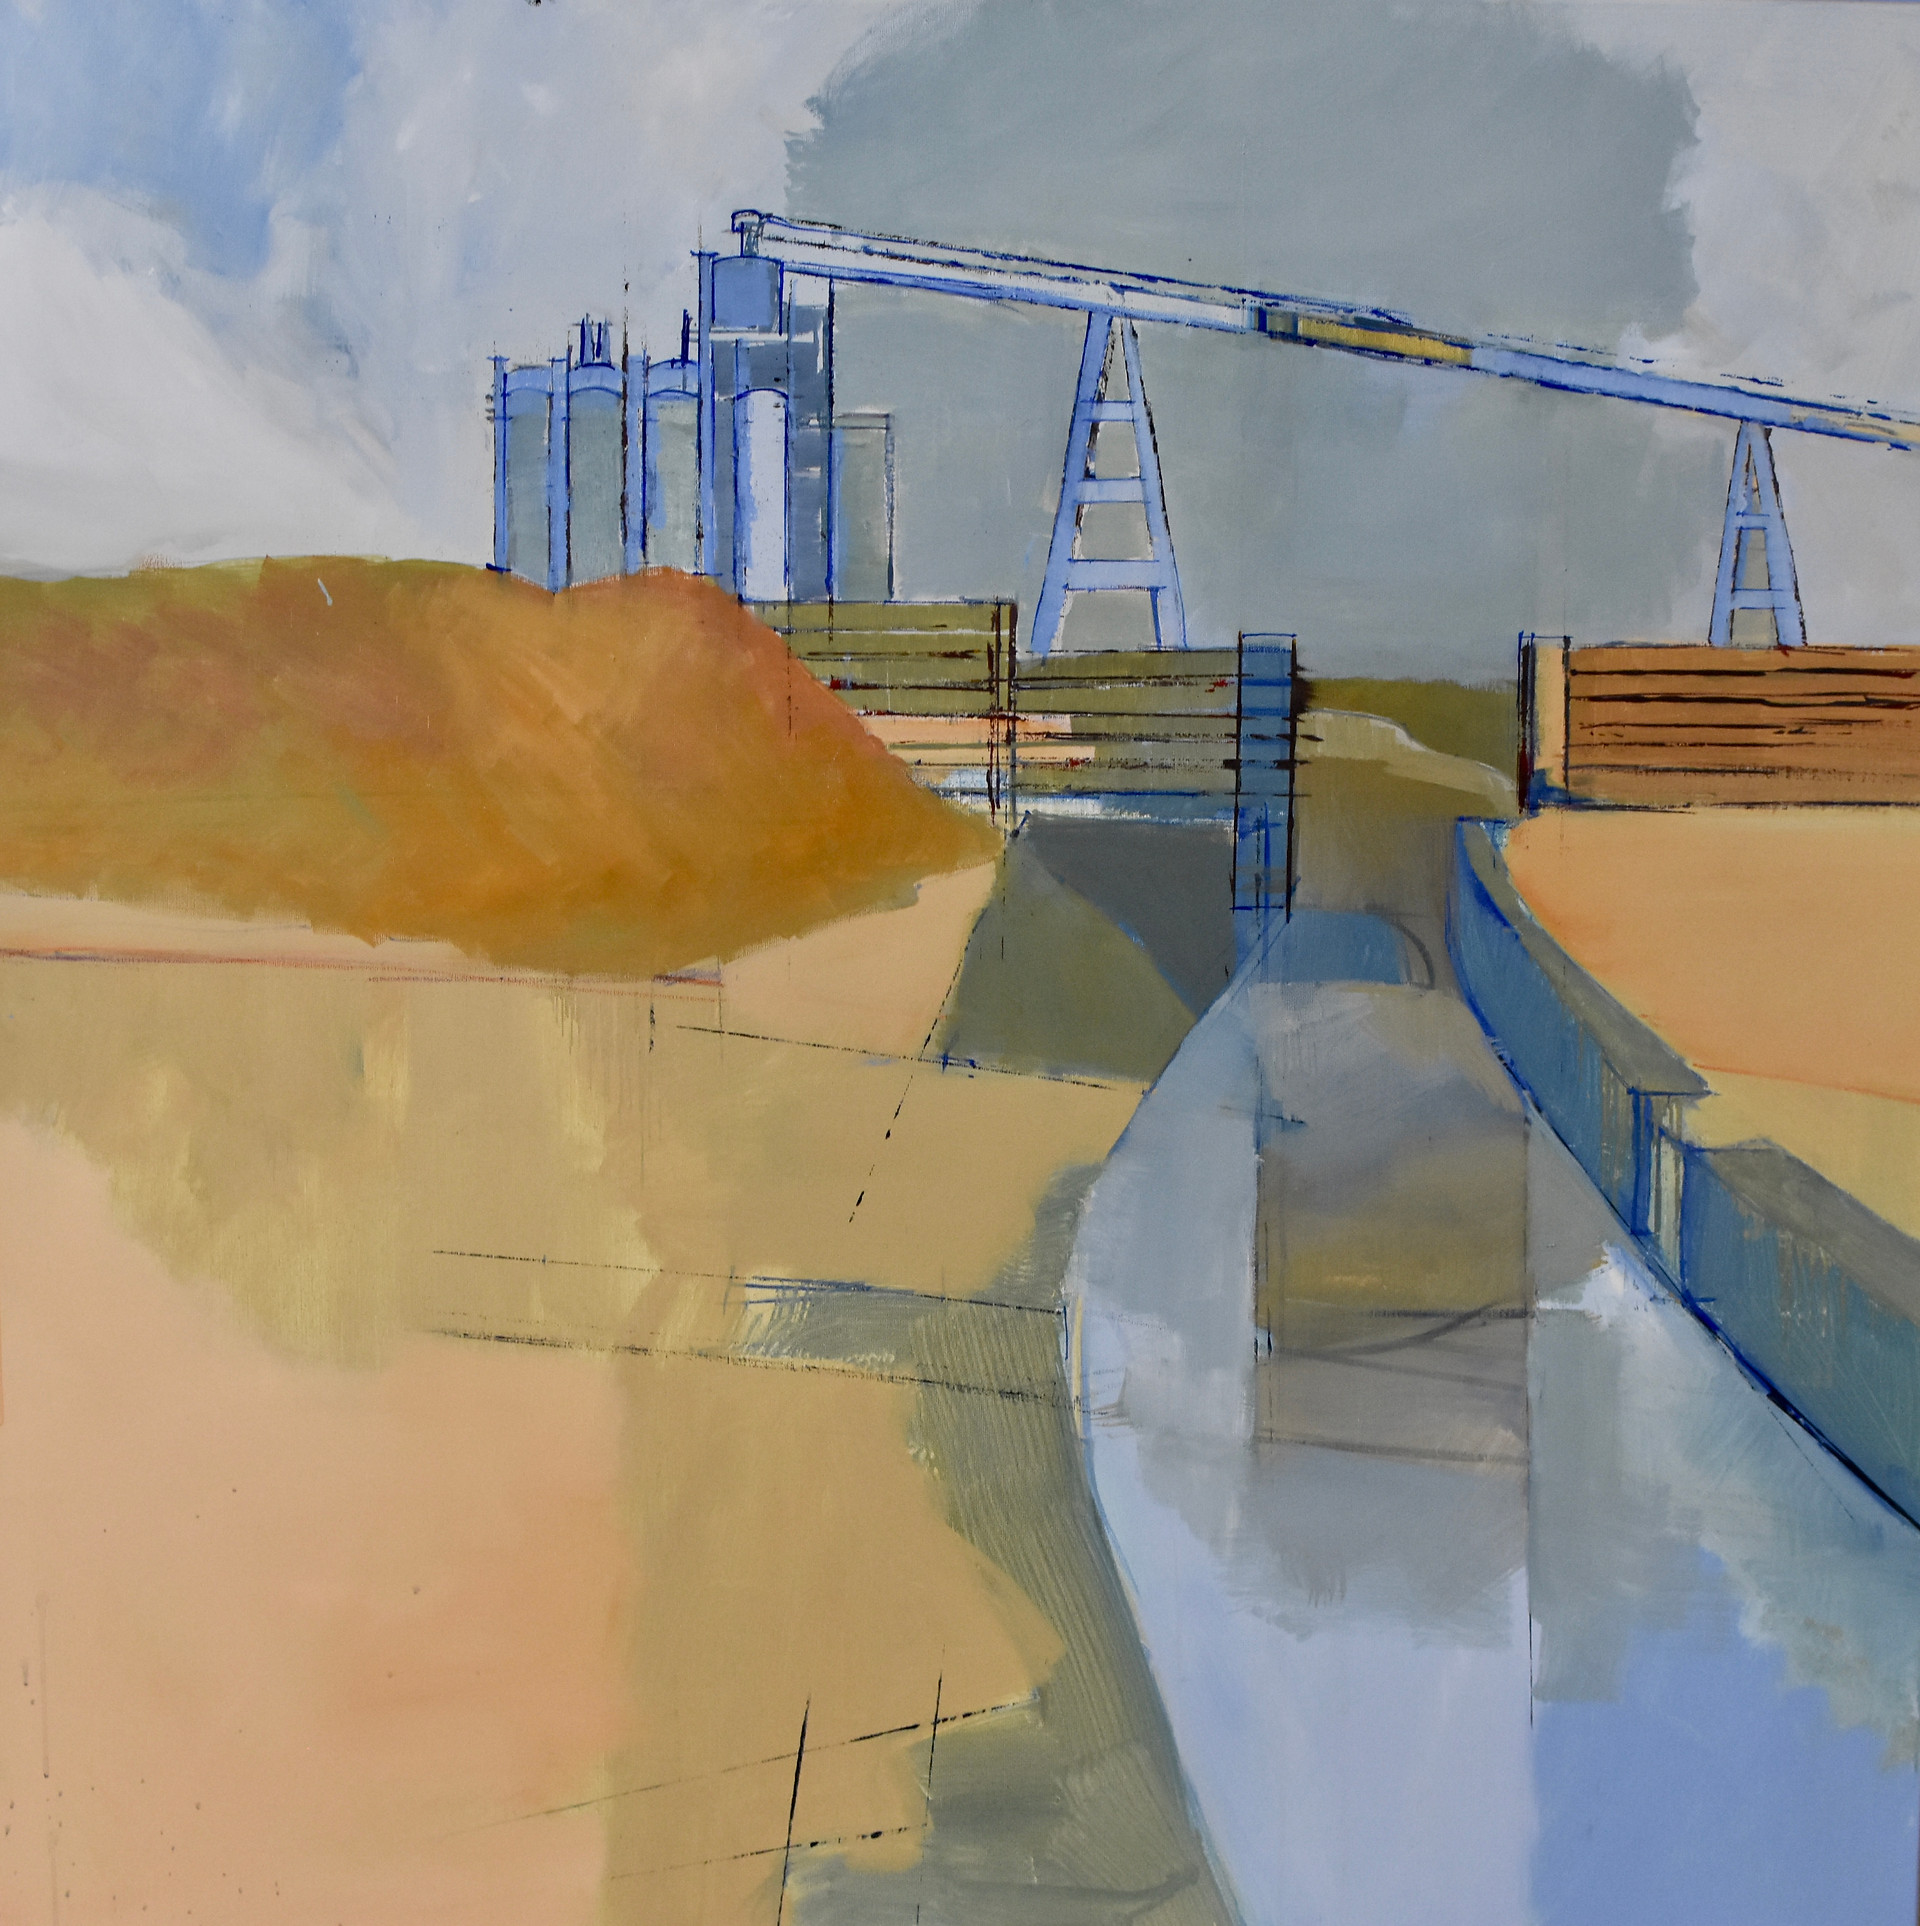 Cement works yard | Oil on canvas | 2018